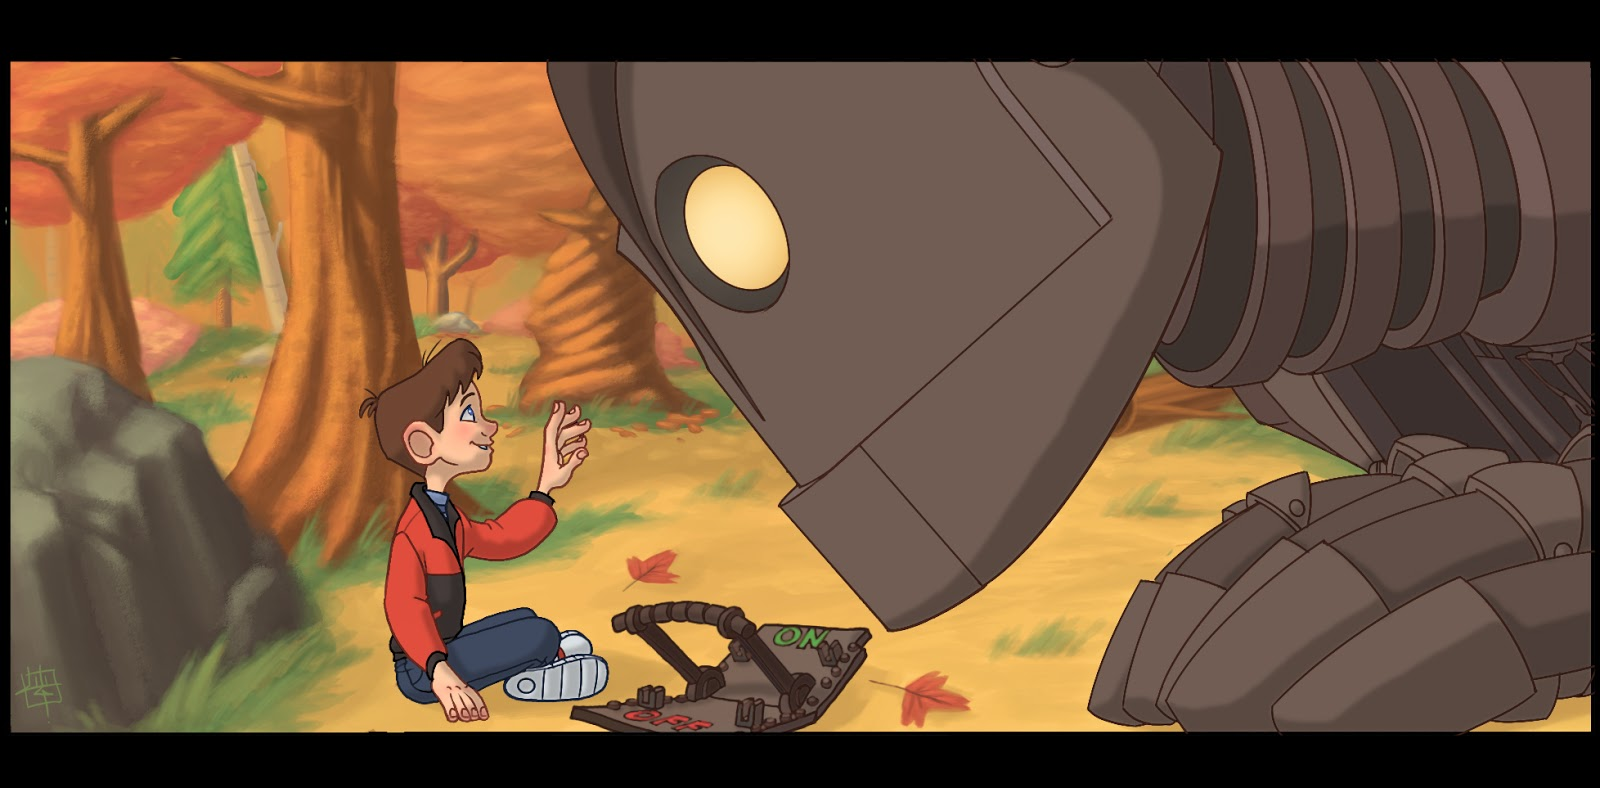 Hogarth and robot The Iron Giant 1999 animatedfilmreviews.filminspector.com